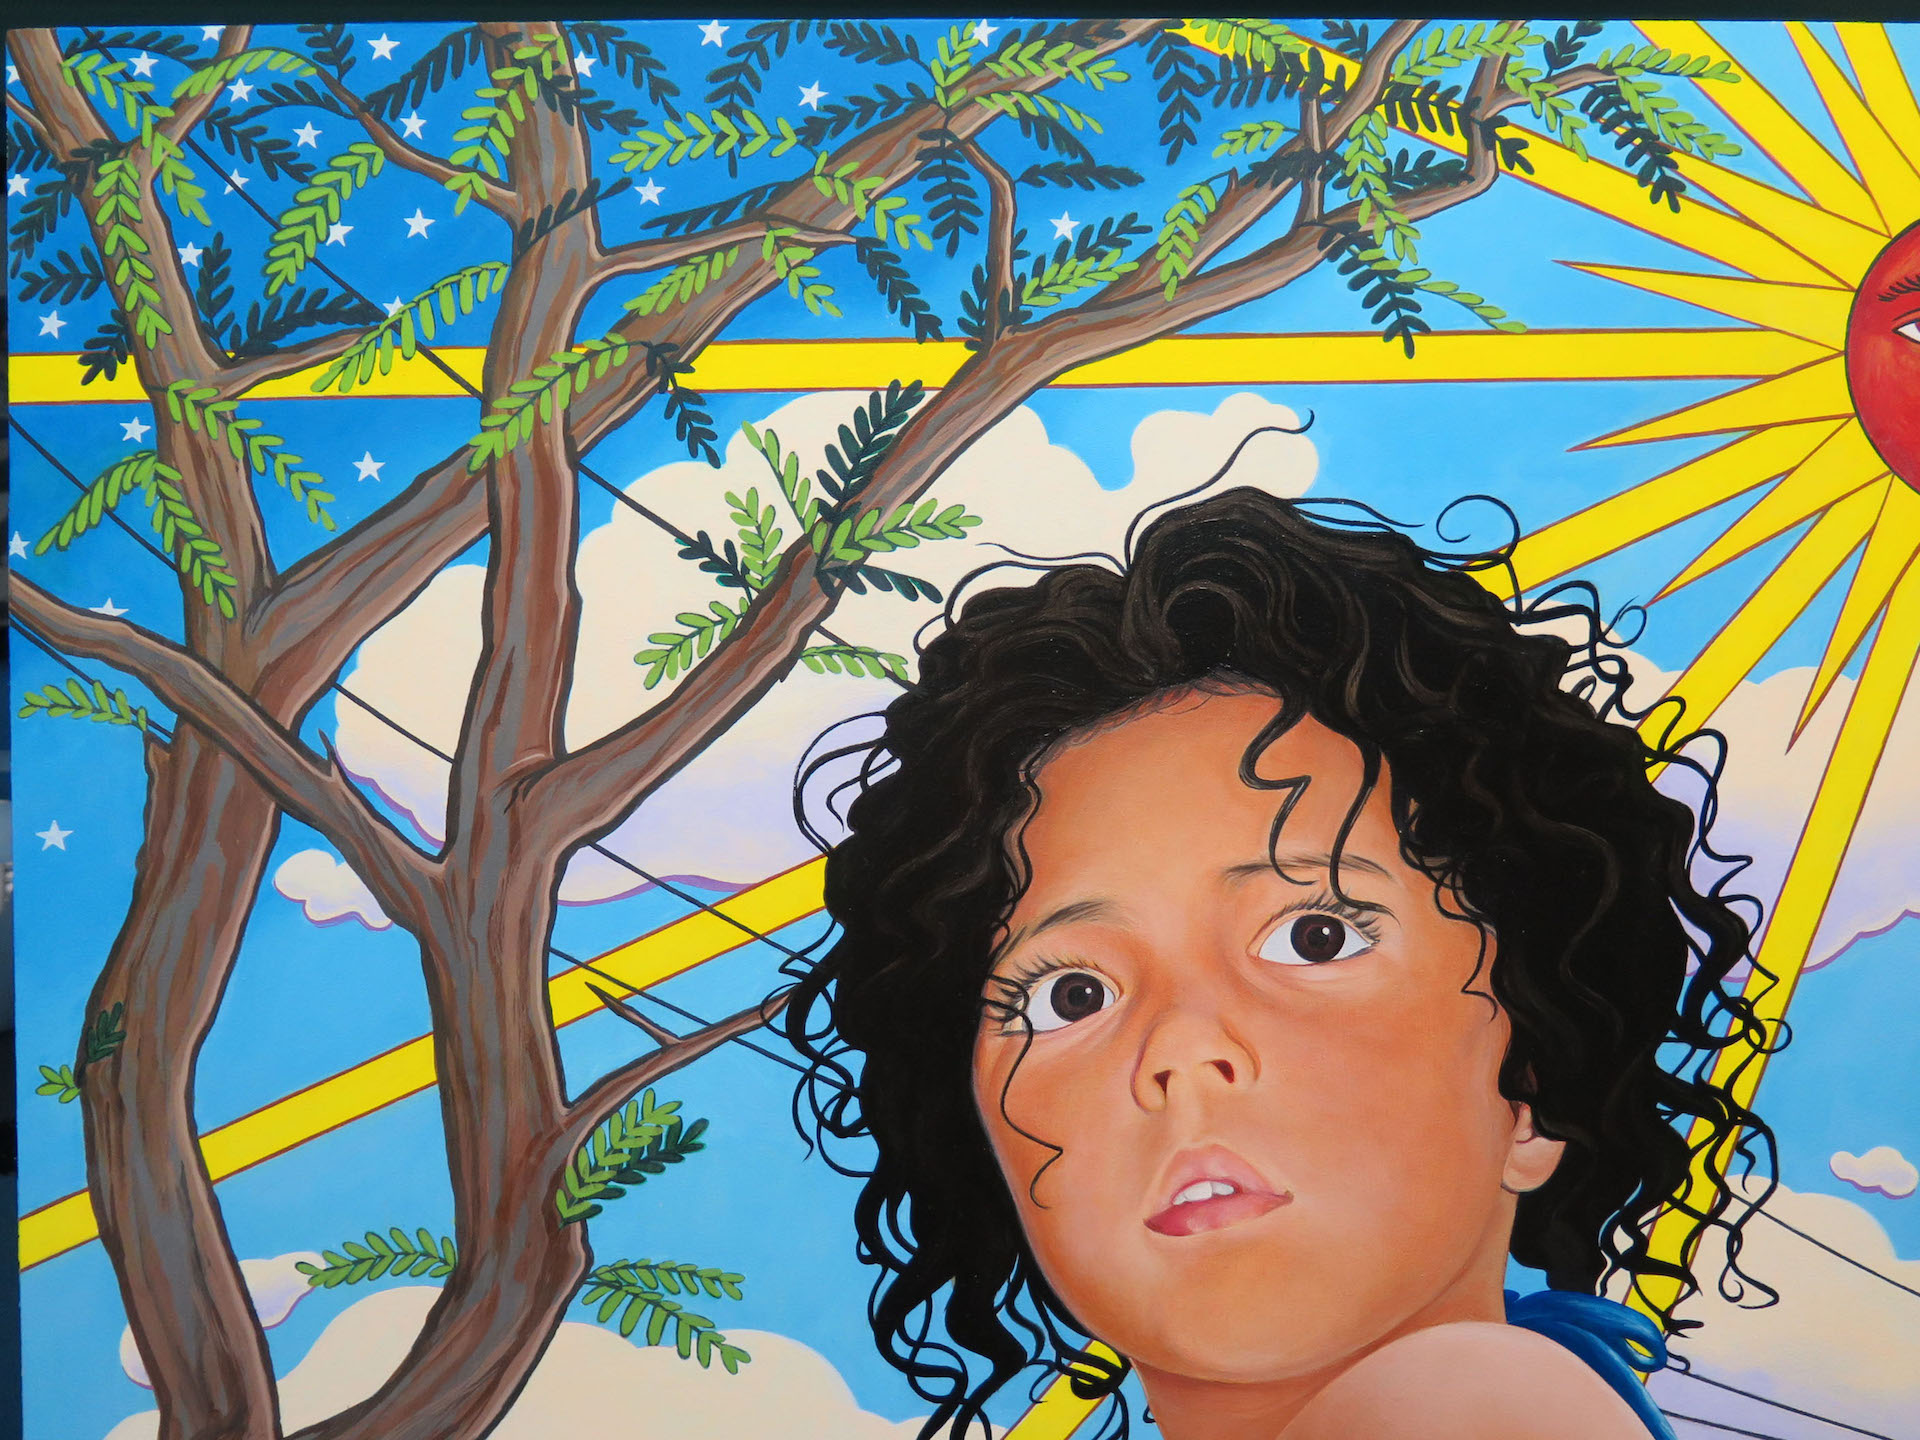 Marianna Olague, Close-up of of Hija del sol, 2018, Acrylic and oil on wood panel, 30 x 24 in